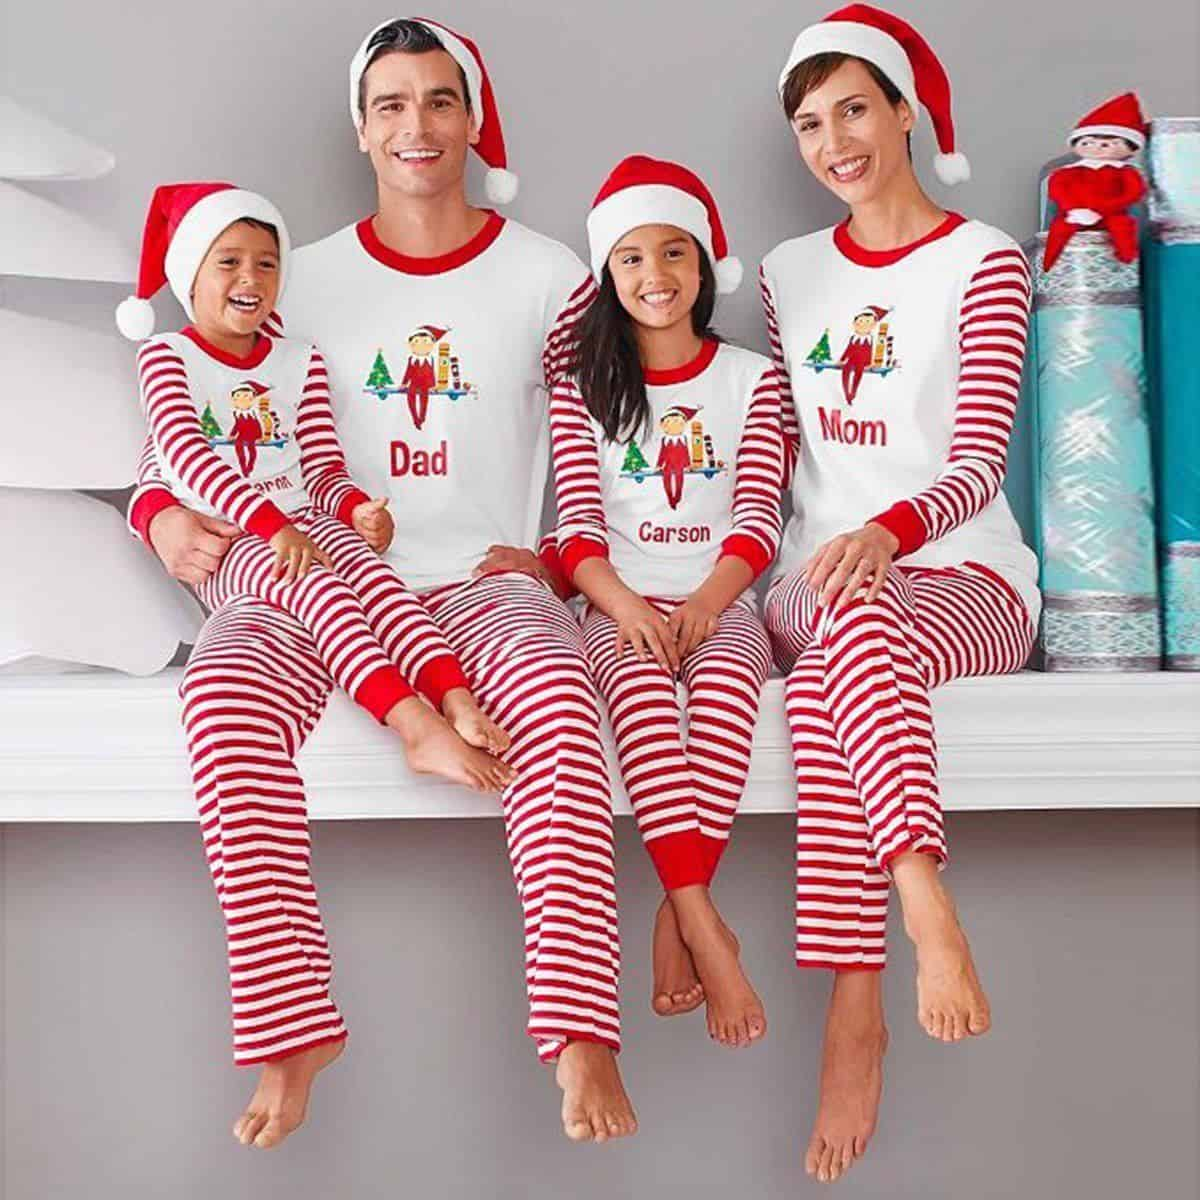 226a9fed21 15 of the Best Matching Family Christmas Pajamas - DIY Candy